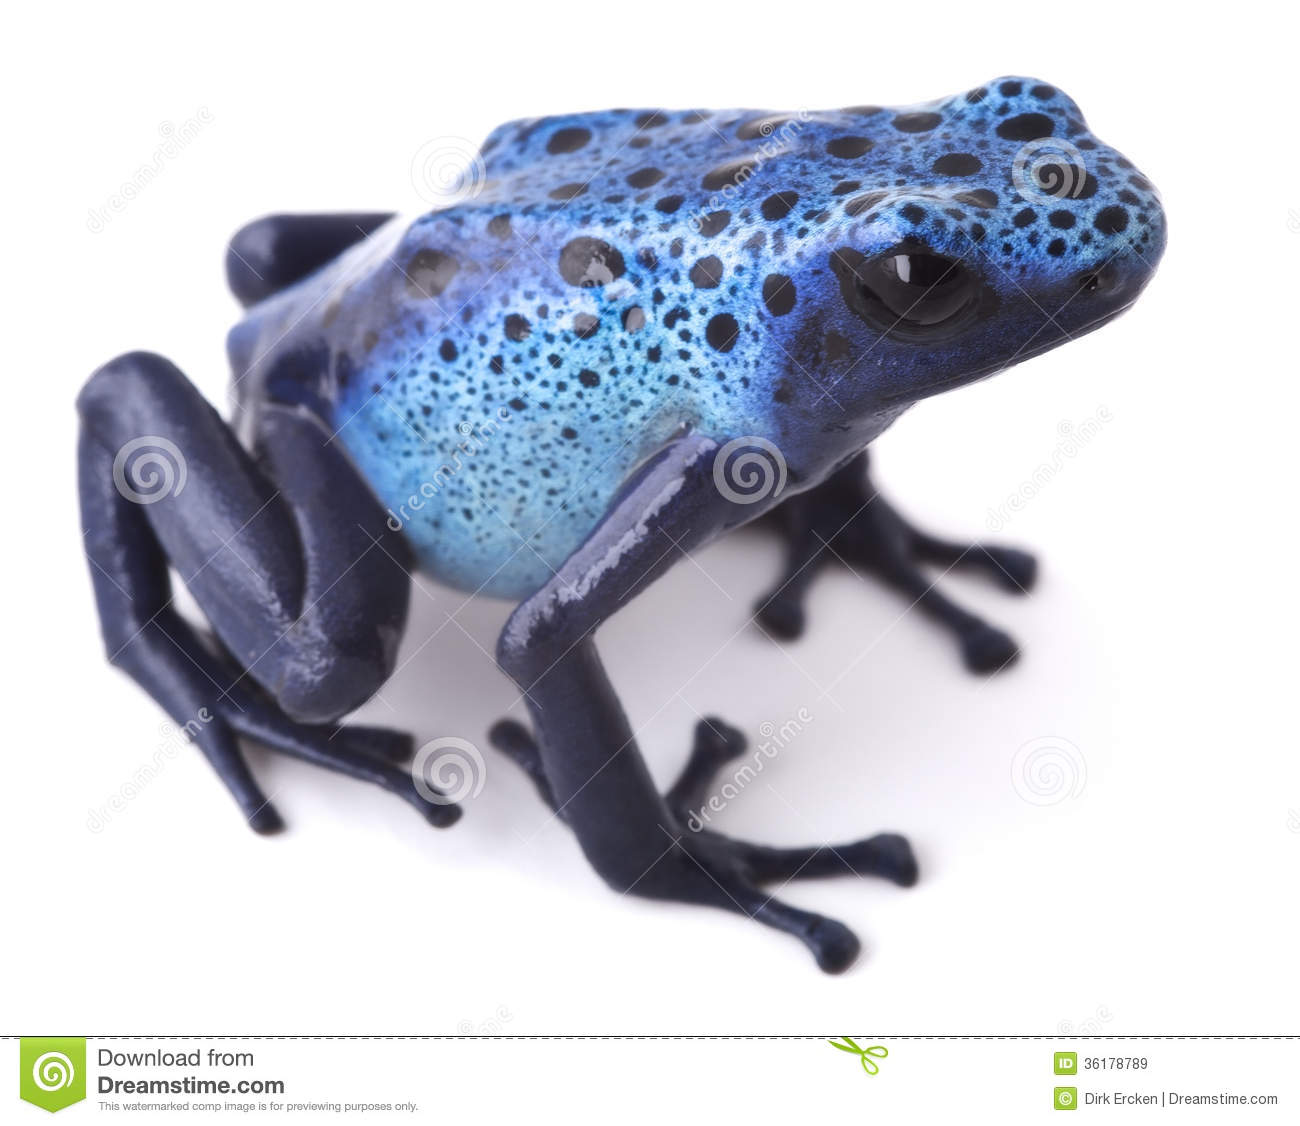 Blue Poison Dart Frog clipart #15, Download drawings